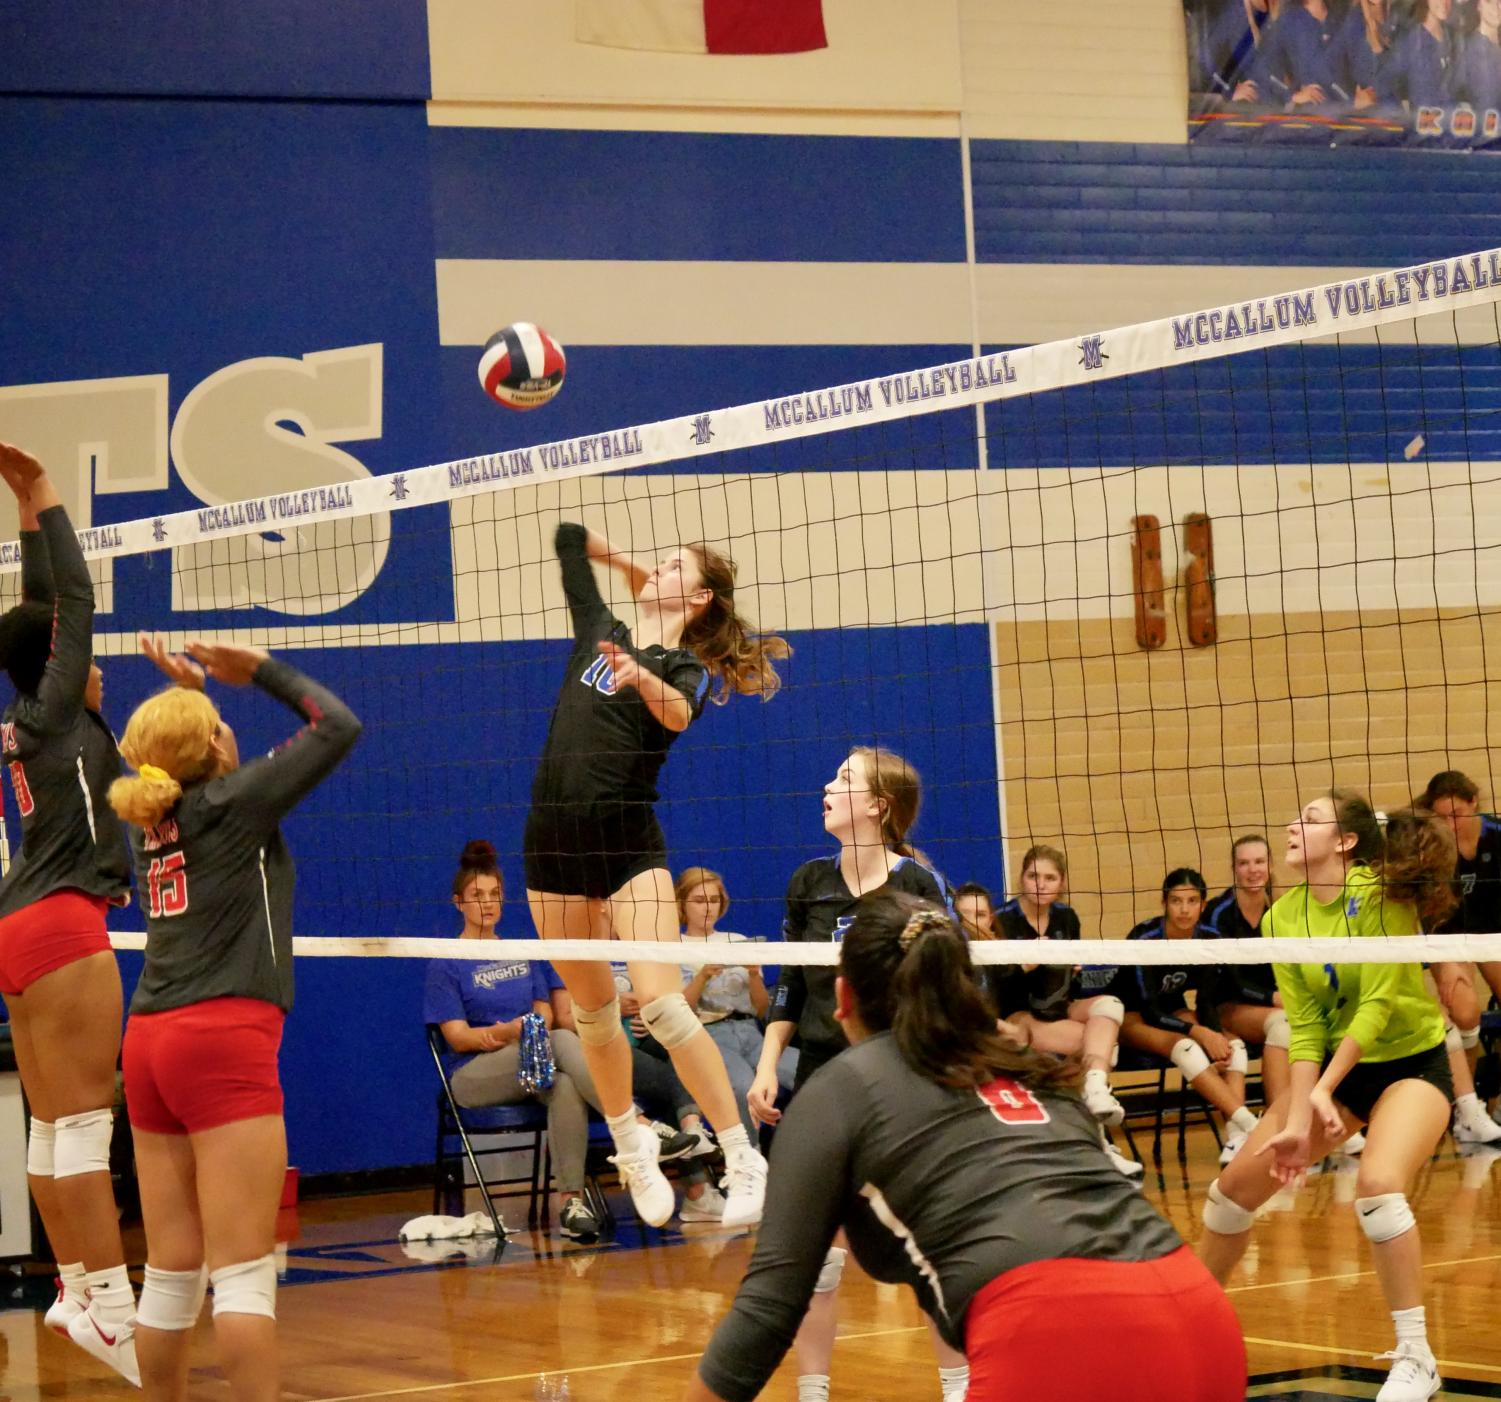 Junior outside hitter Sarah Weisbrodt leaps up for a kill against Travis on Friday, Sept. 27. After defeating the Rebels, the Knights have a 5-0 conference winning record, as does Dripping Springs, their opponent for Tuesday night's match.